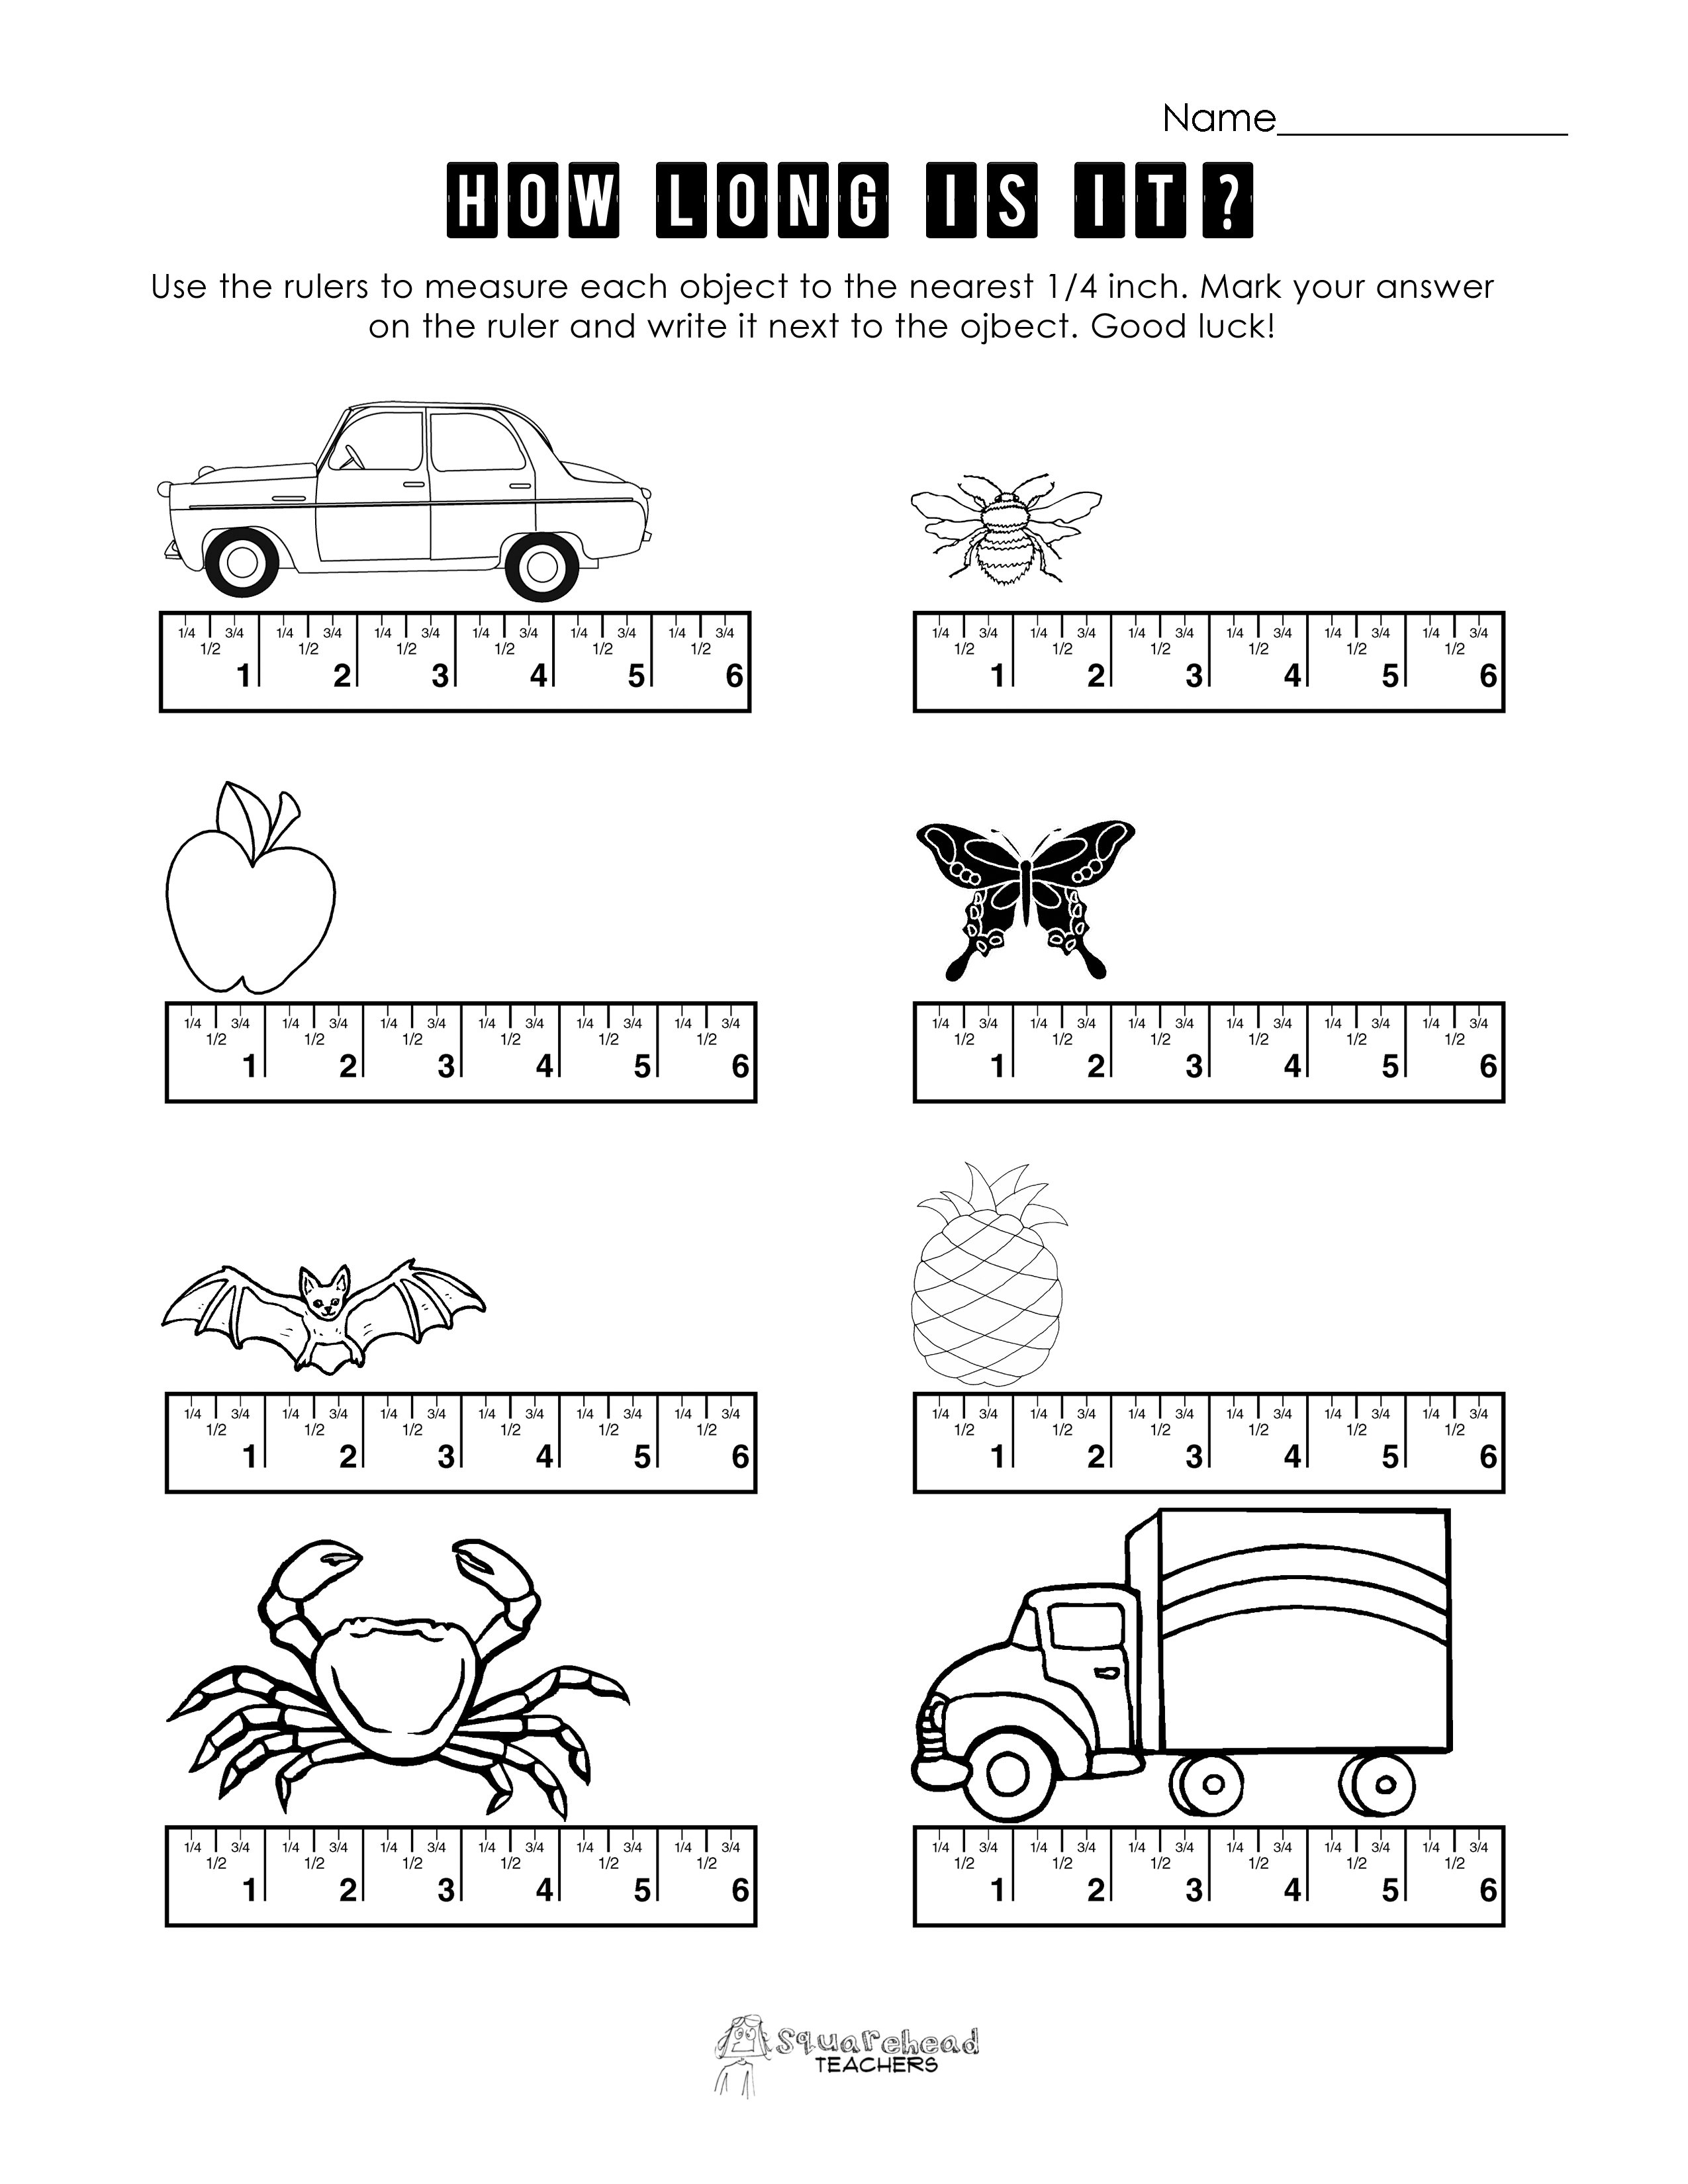 Measurement Practice 1  Squarehead Teachers For Measuring To The Nearest 1 4 Inch Worksheet